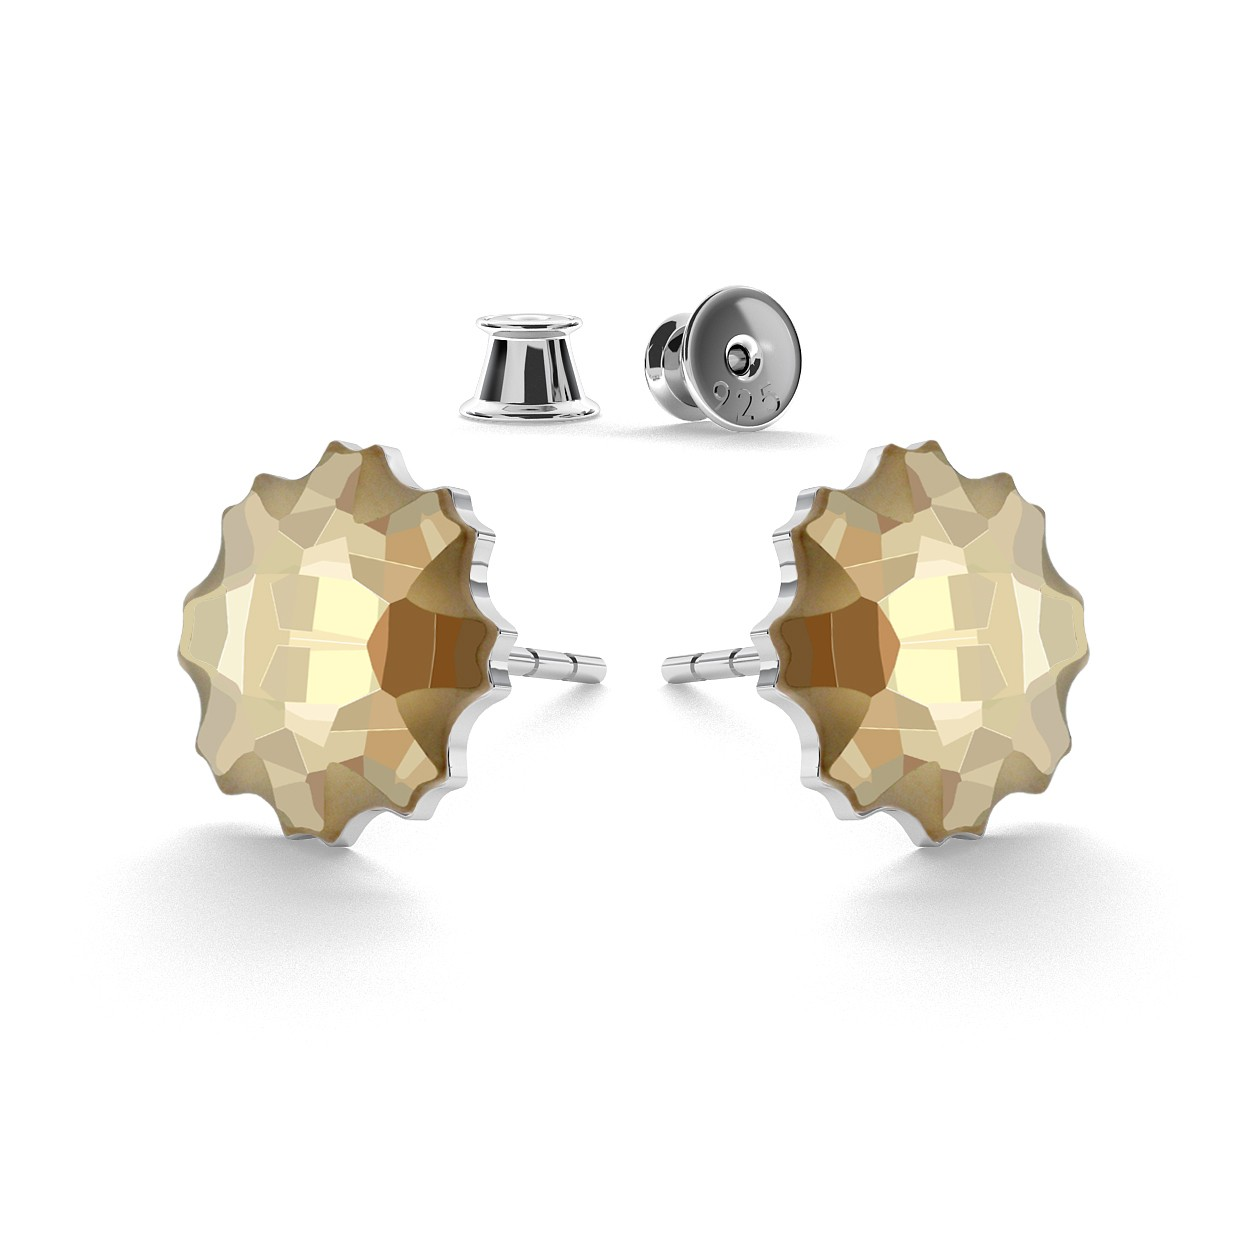 JELLYFISH EARRINGS, SWAROVSKI 2612 MM 10, STERLING SILVER (925) RHODIUM OR GOLD PLATED